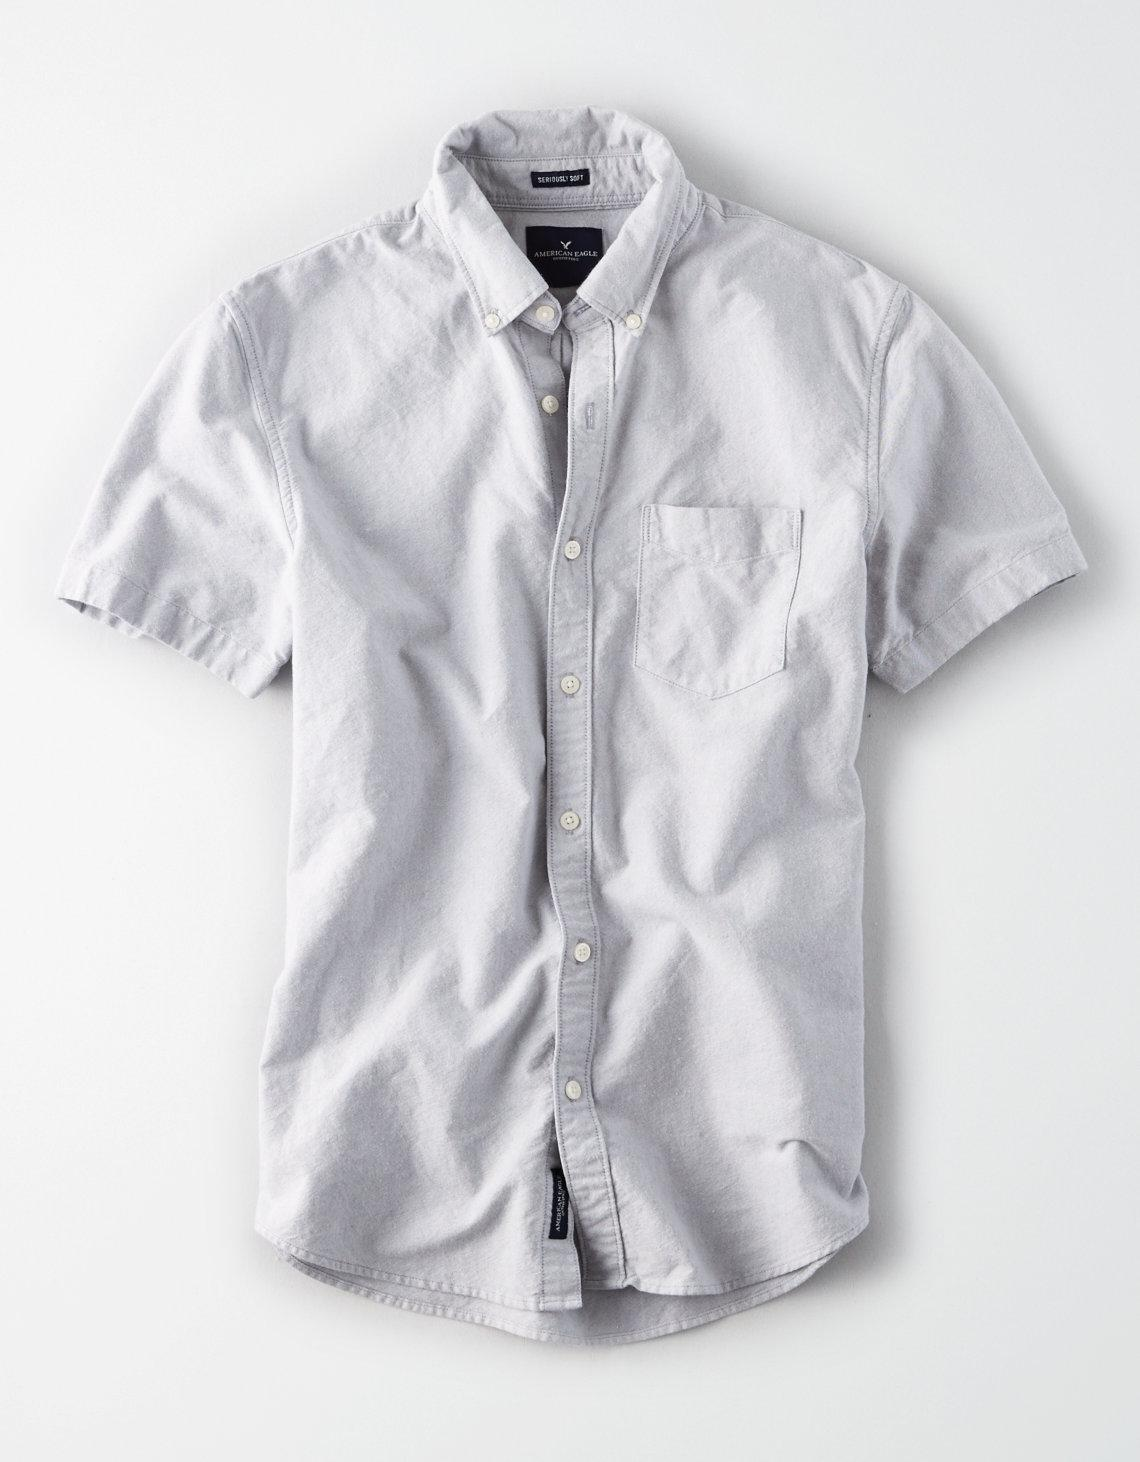 d7bf04ce American Eagle Short Sleeve Shirts